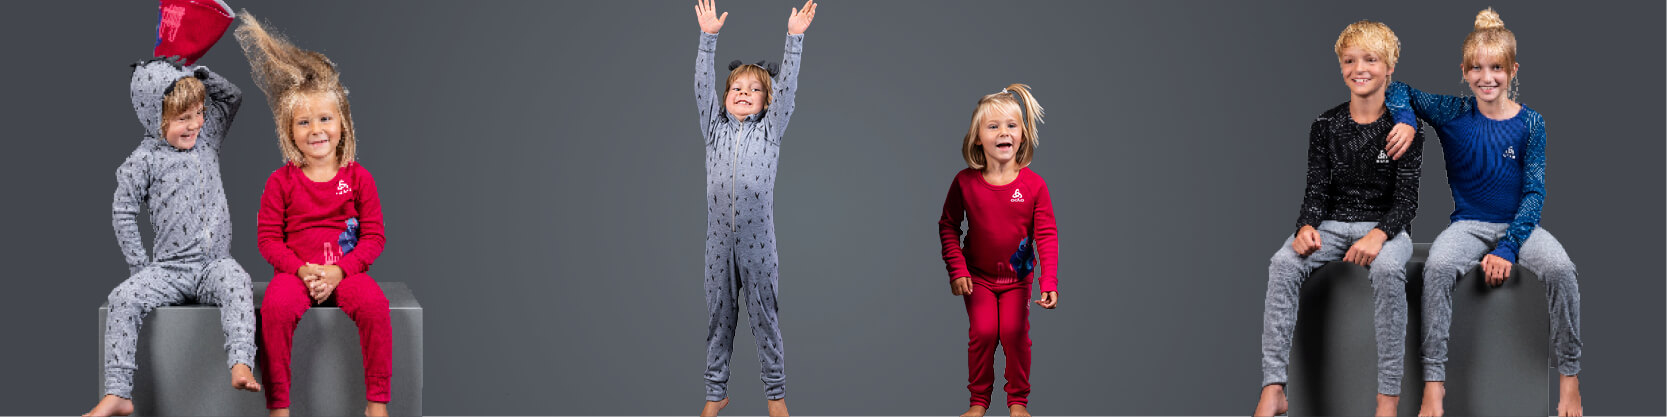 Odlo kids midlayer, baselayer, tops, pants